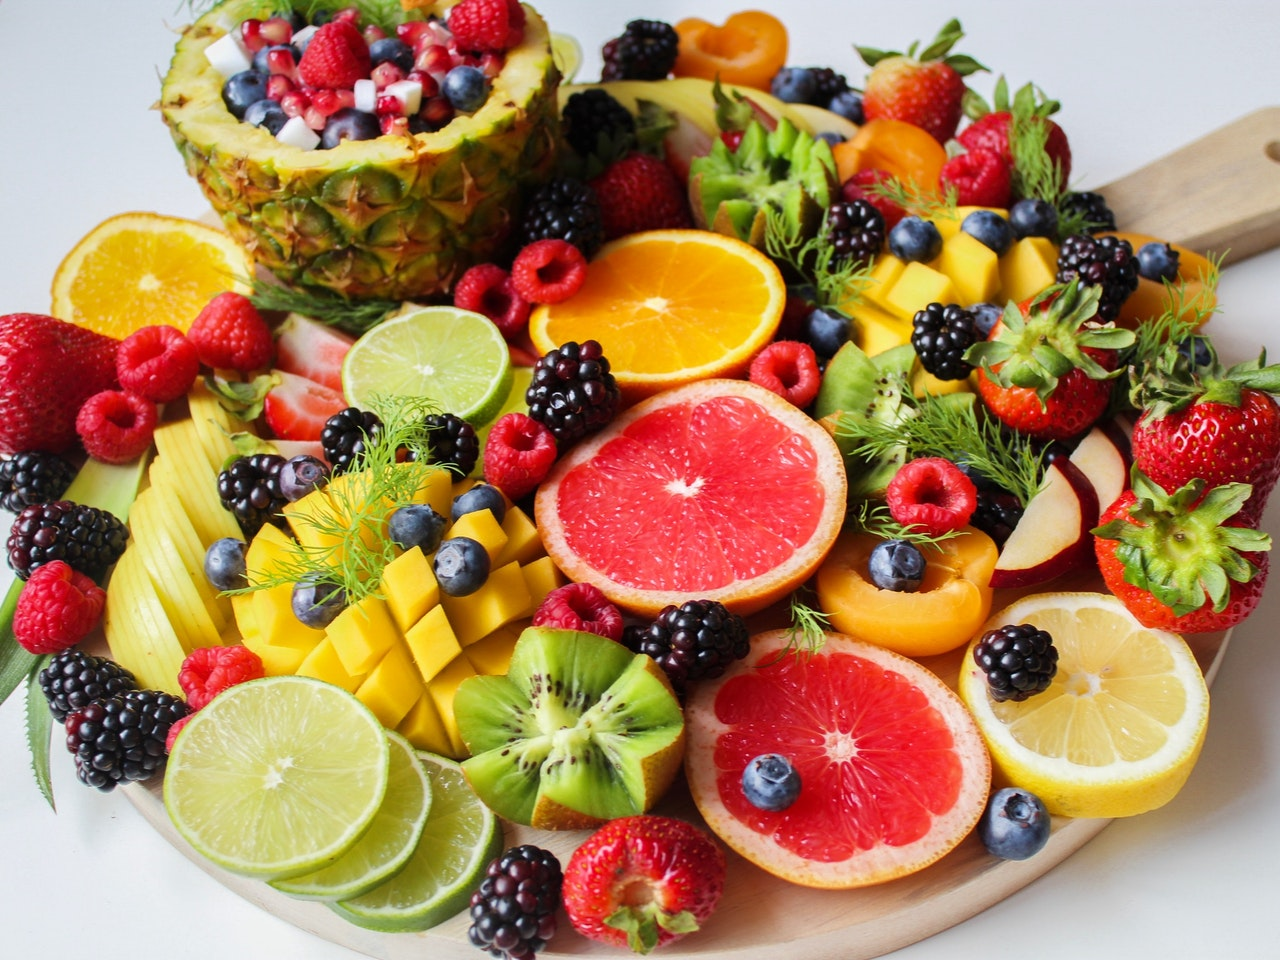 Can eating fruits help in weight loss? Here's what Ayurveda says